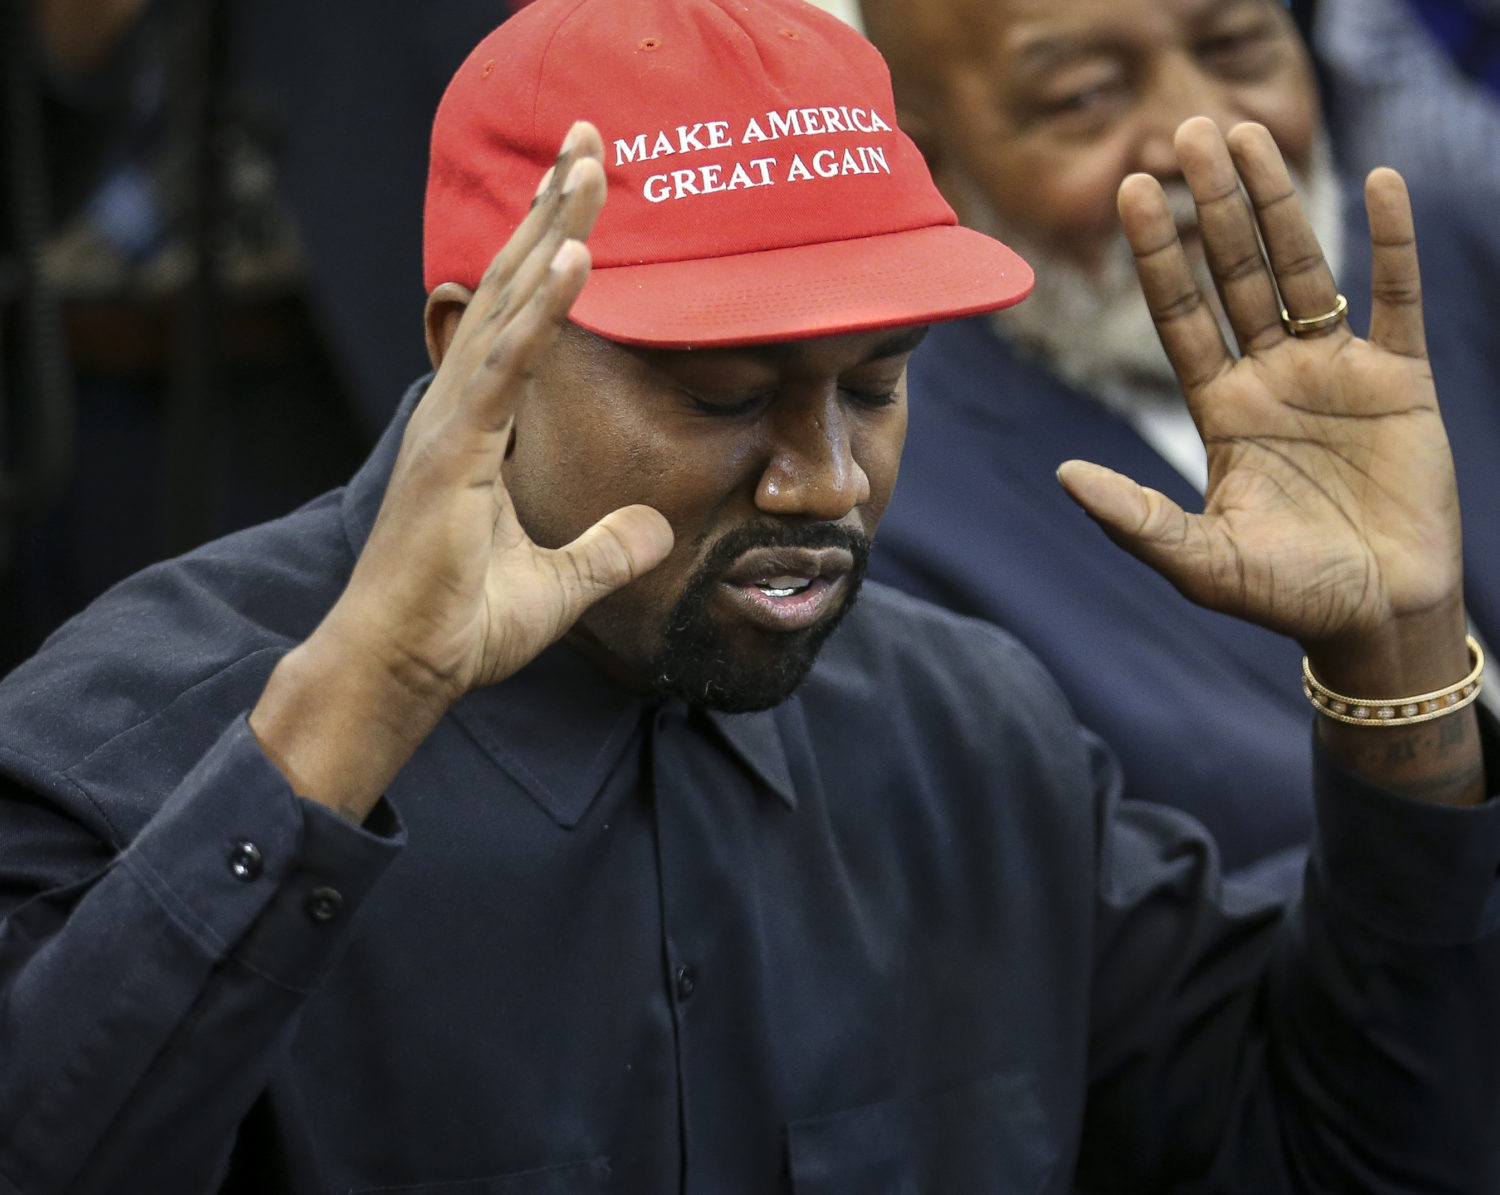 WASHINGTON, DC - OCTOBER 11: Rapper Kanye West speaks during a meeting with U.S. President Donald Trump in the Oval office of the White House on October 11, 2018 in Washington, DC. (Photo by Oliver Contreras - Pool/Getty Images)